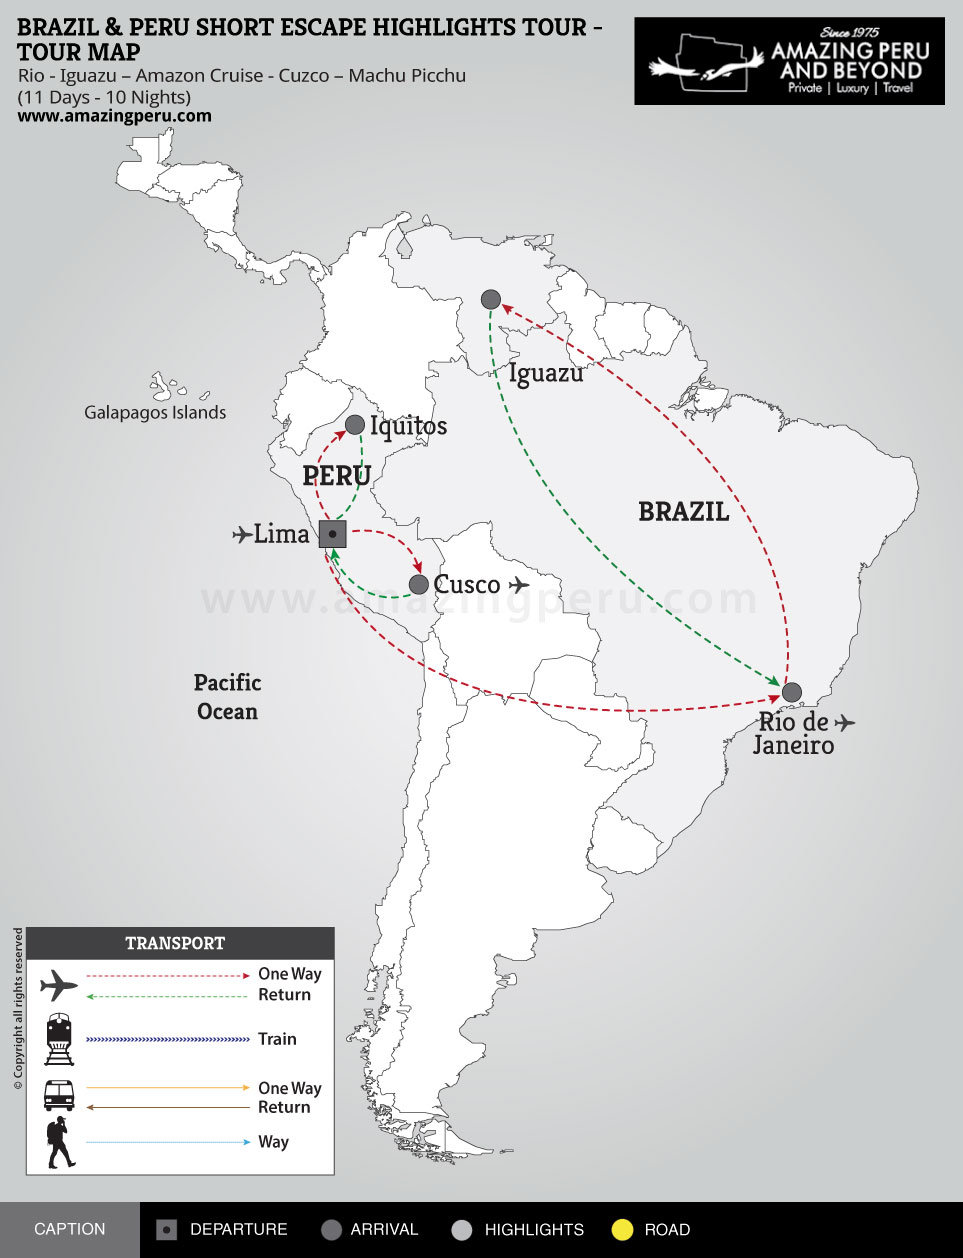 Brazil & Peru Short Escape Highlights Tour - 11 days / 10 nights.